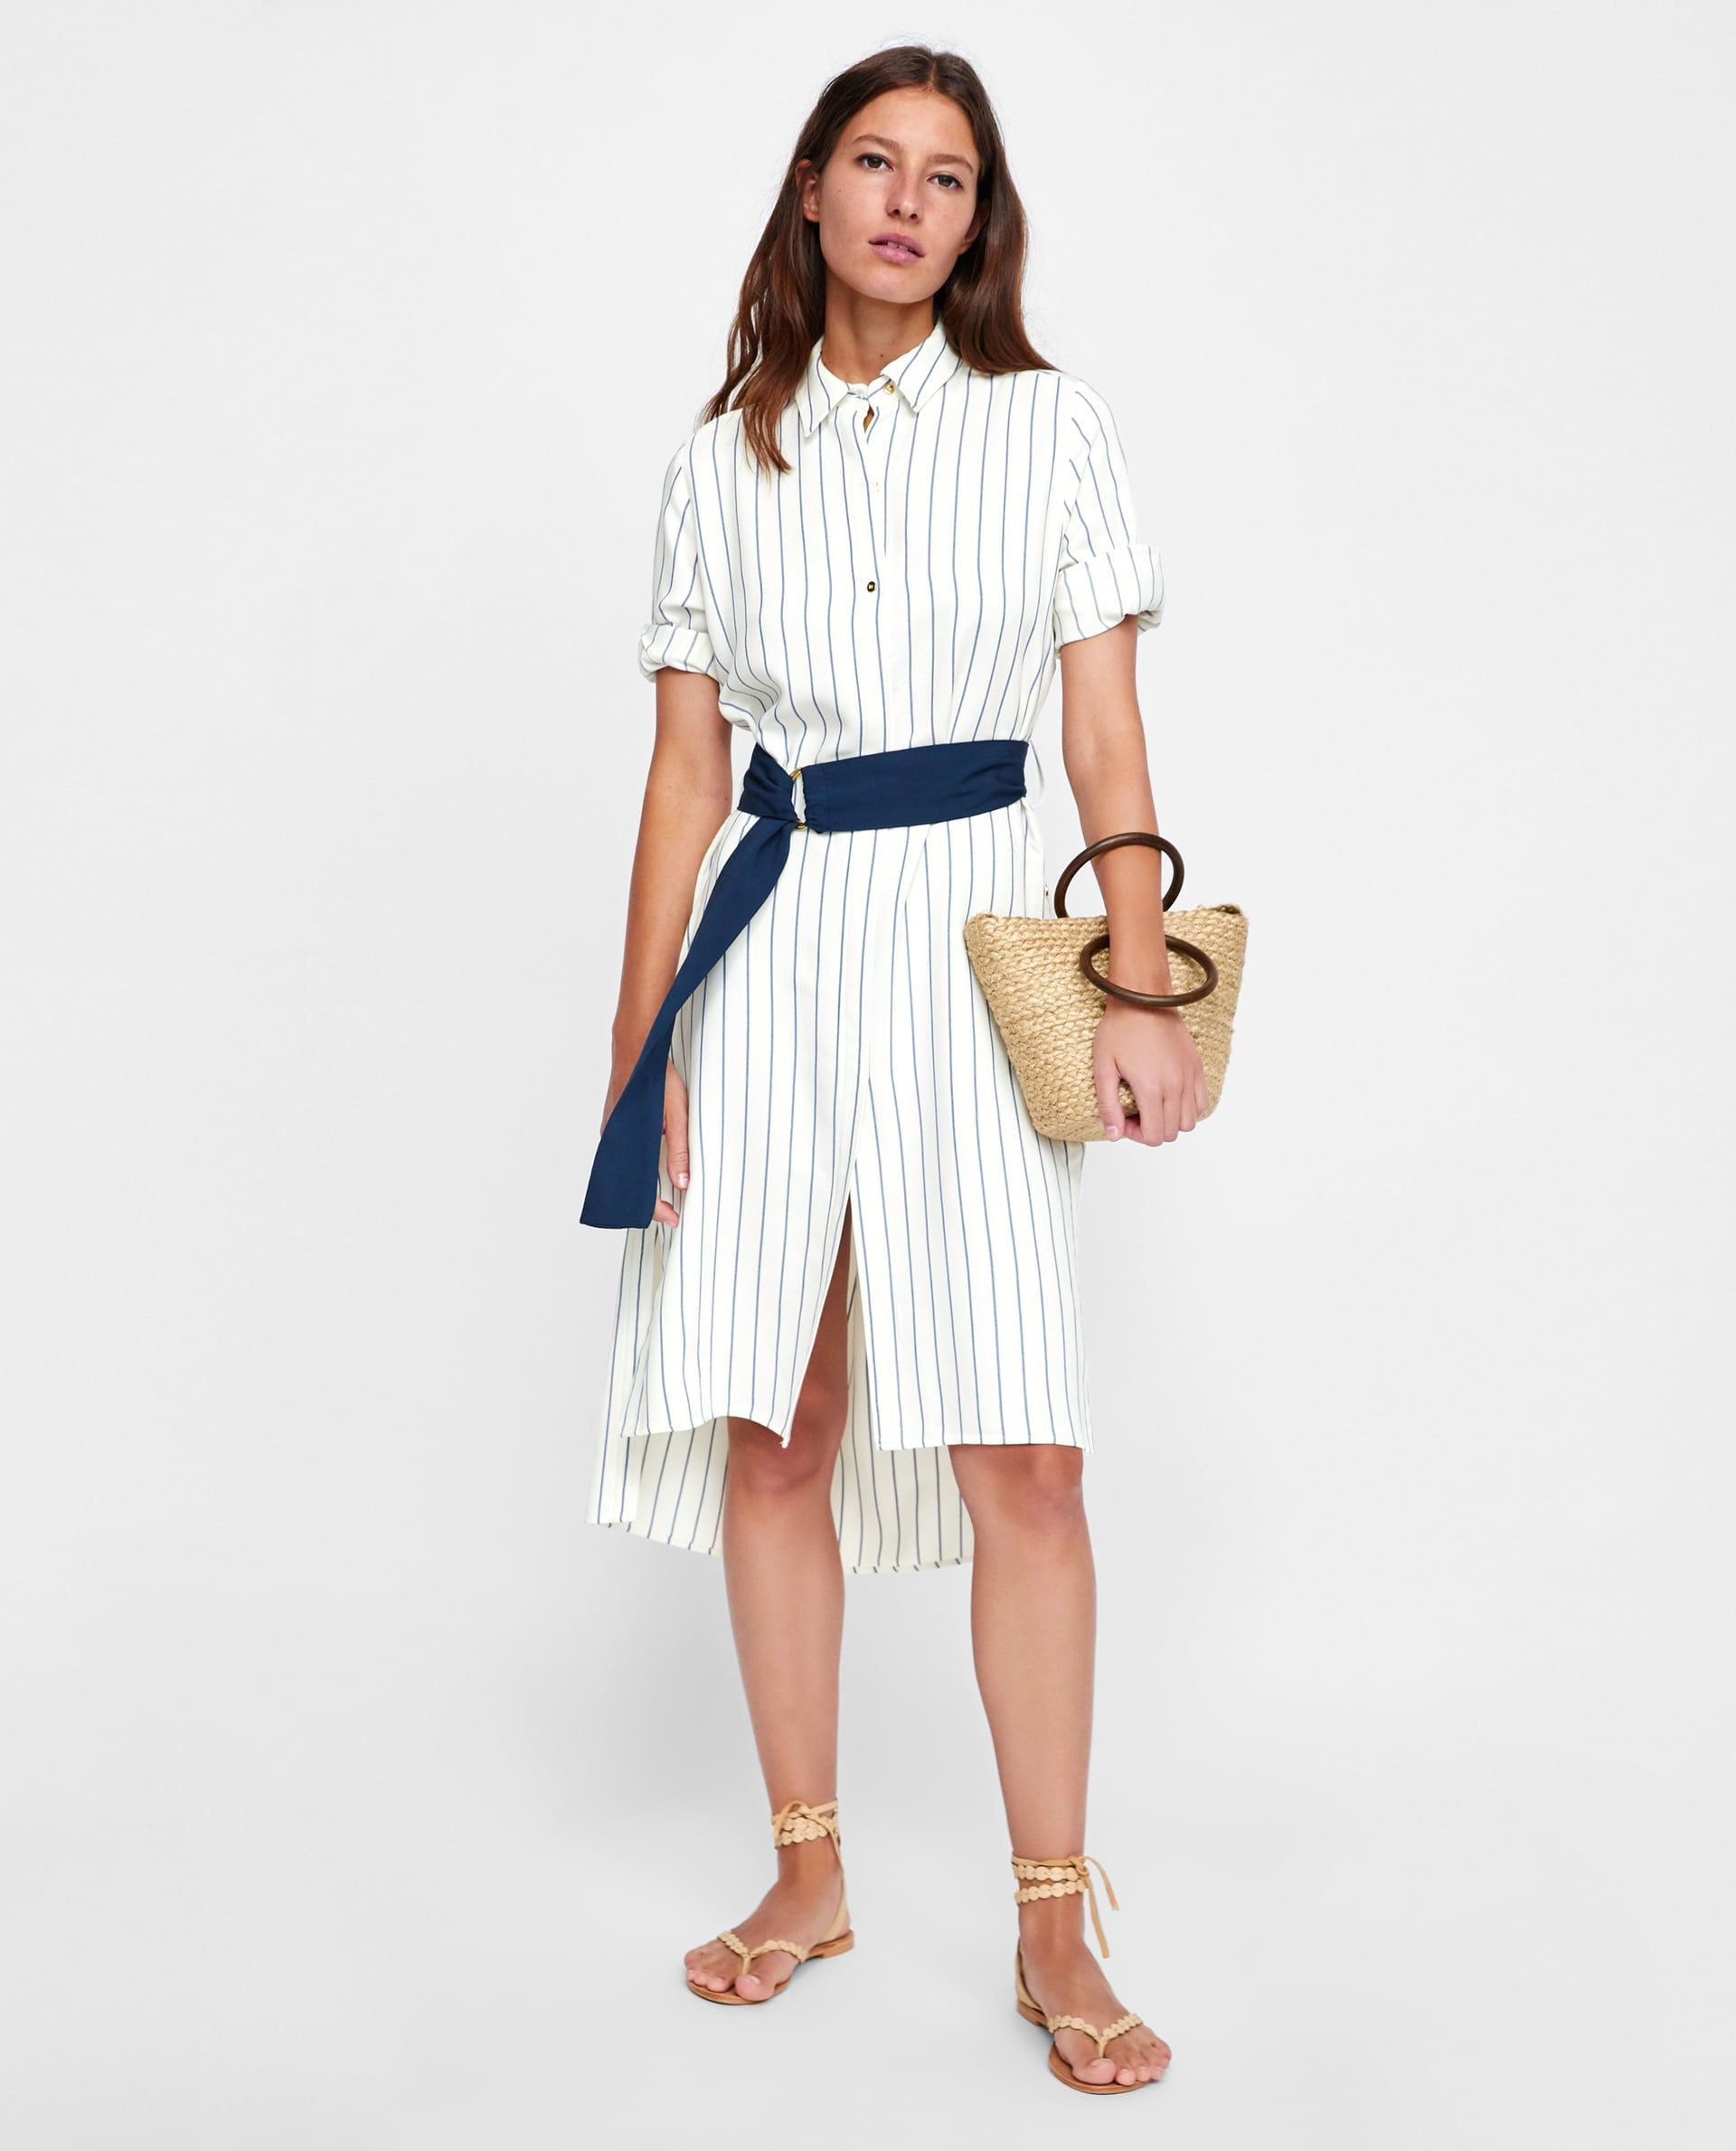 95a9e3c9cf ZARA - WOMAN - STRIPED SHIRT DRESS